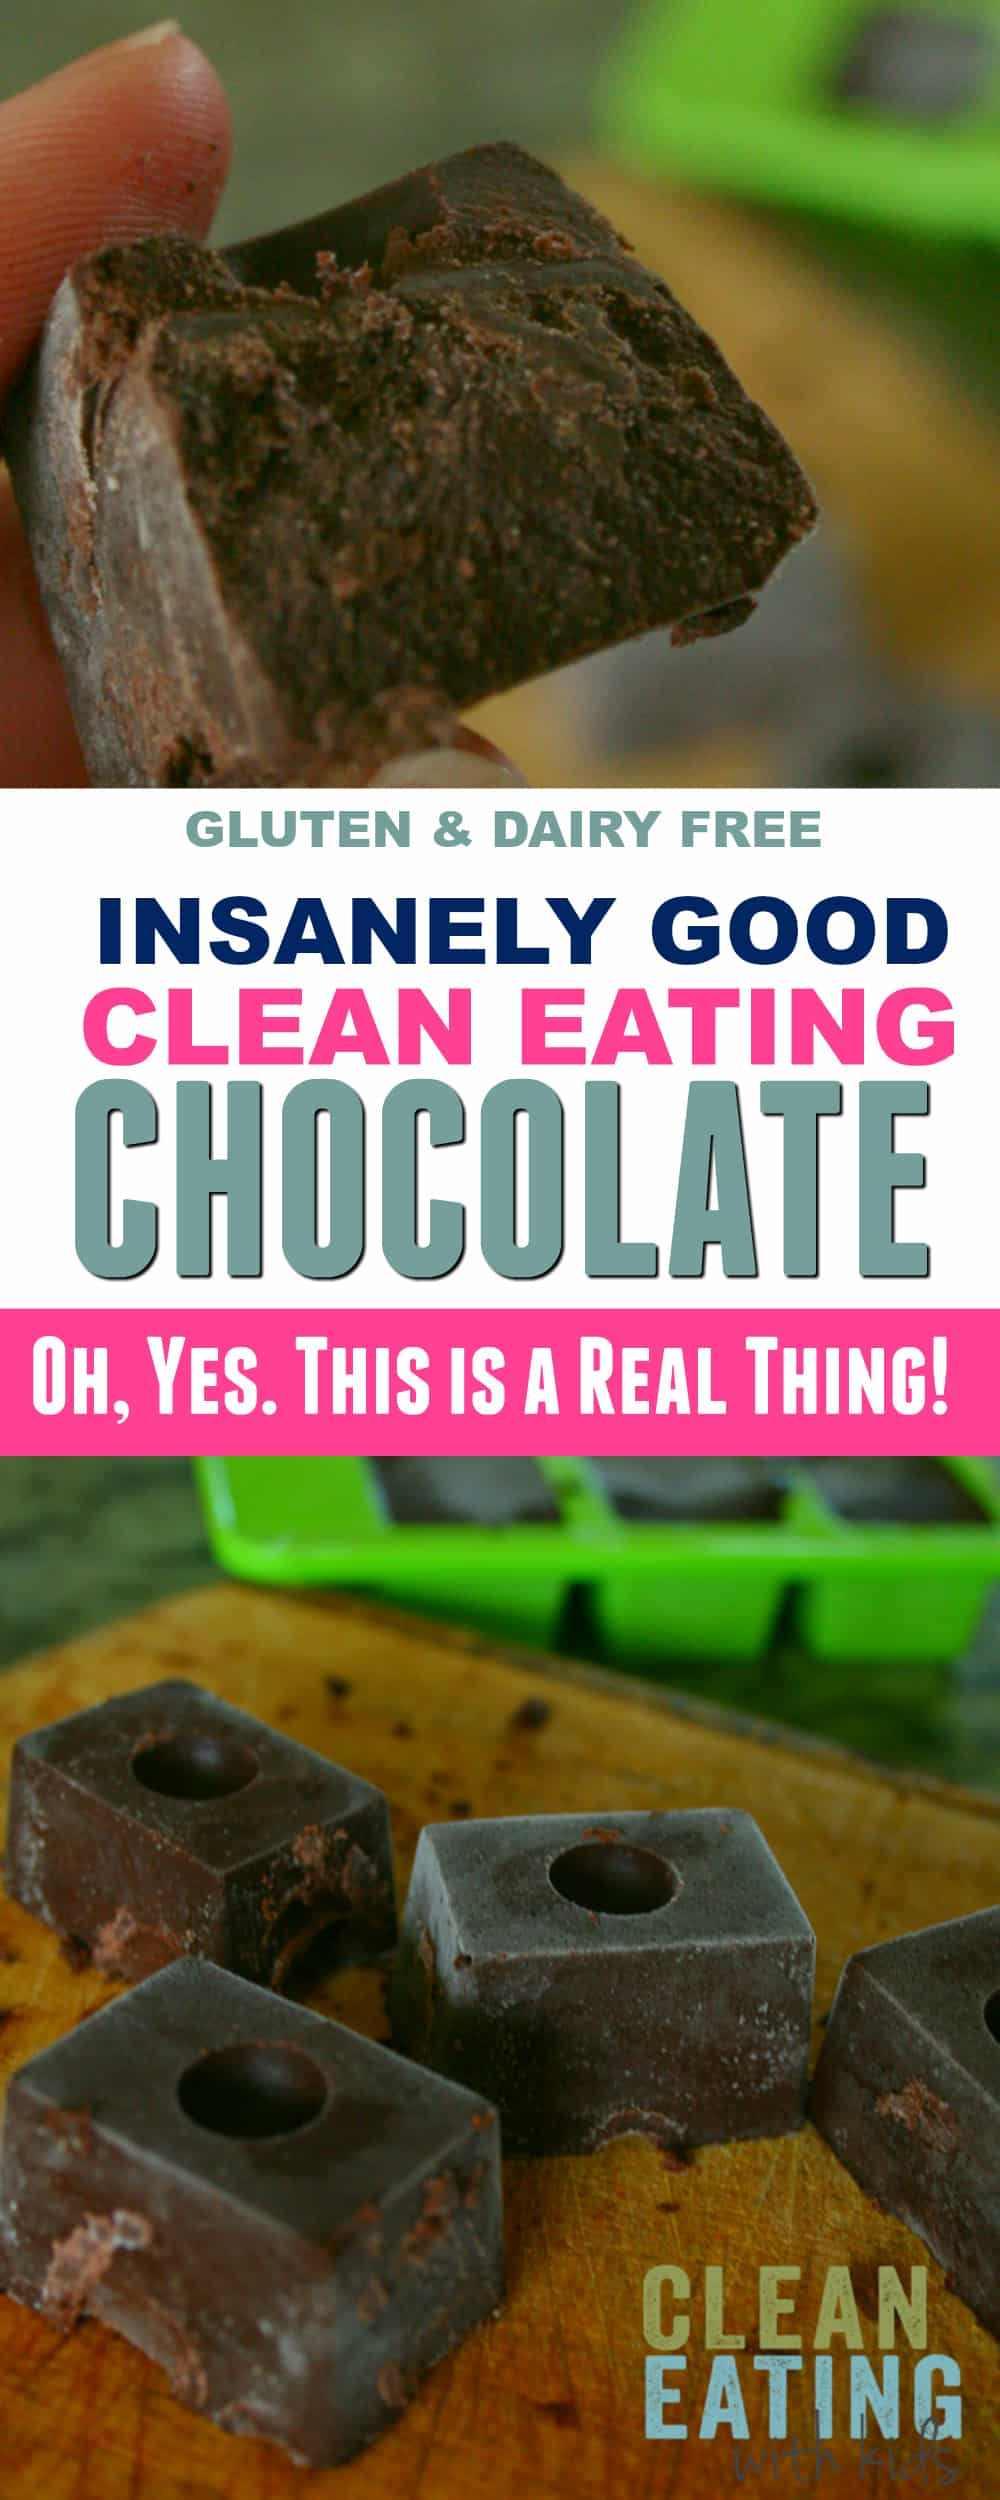 insanely good Clean Eating Chocolate!! Seriously this stuff rocks!